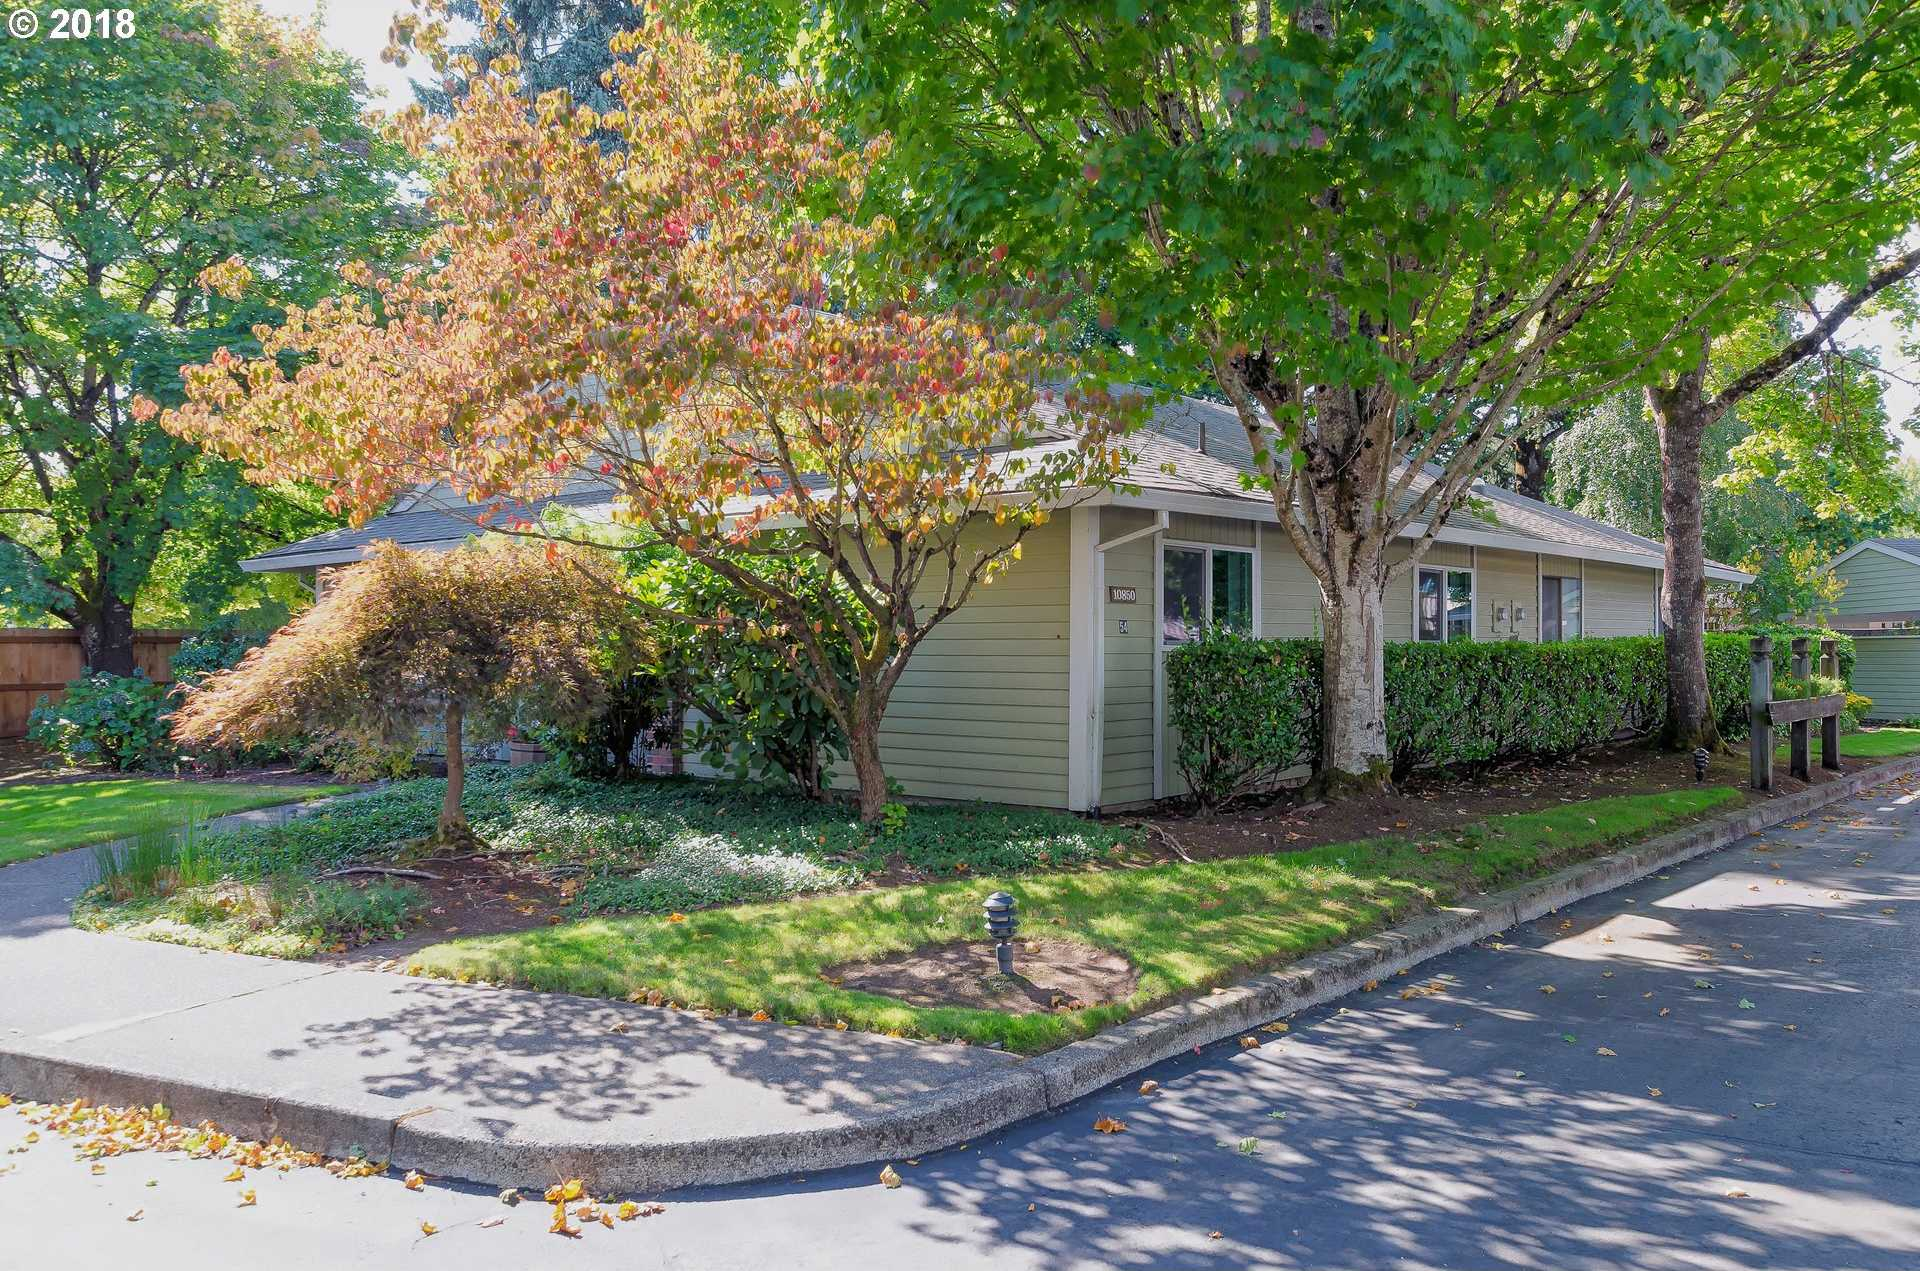 $199,999 - 2Br/2Ba -  for Sale in Summerfield, Tigard